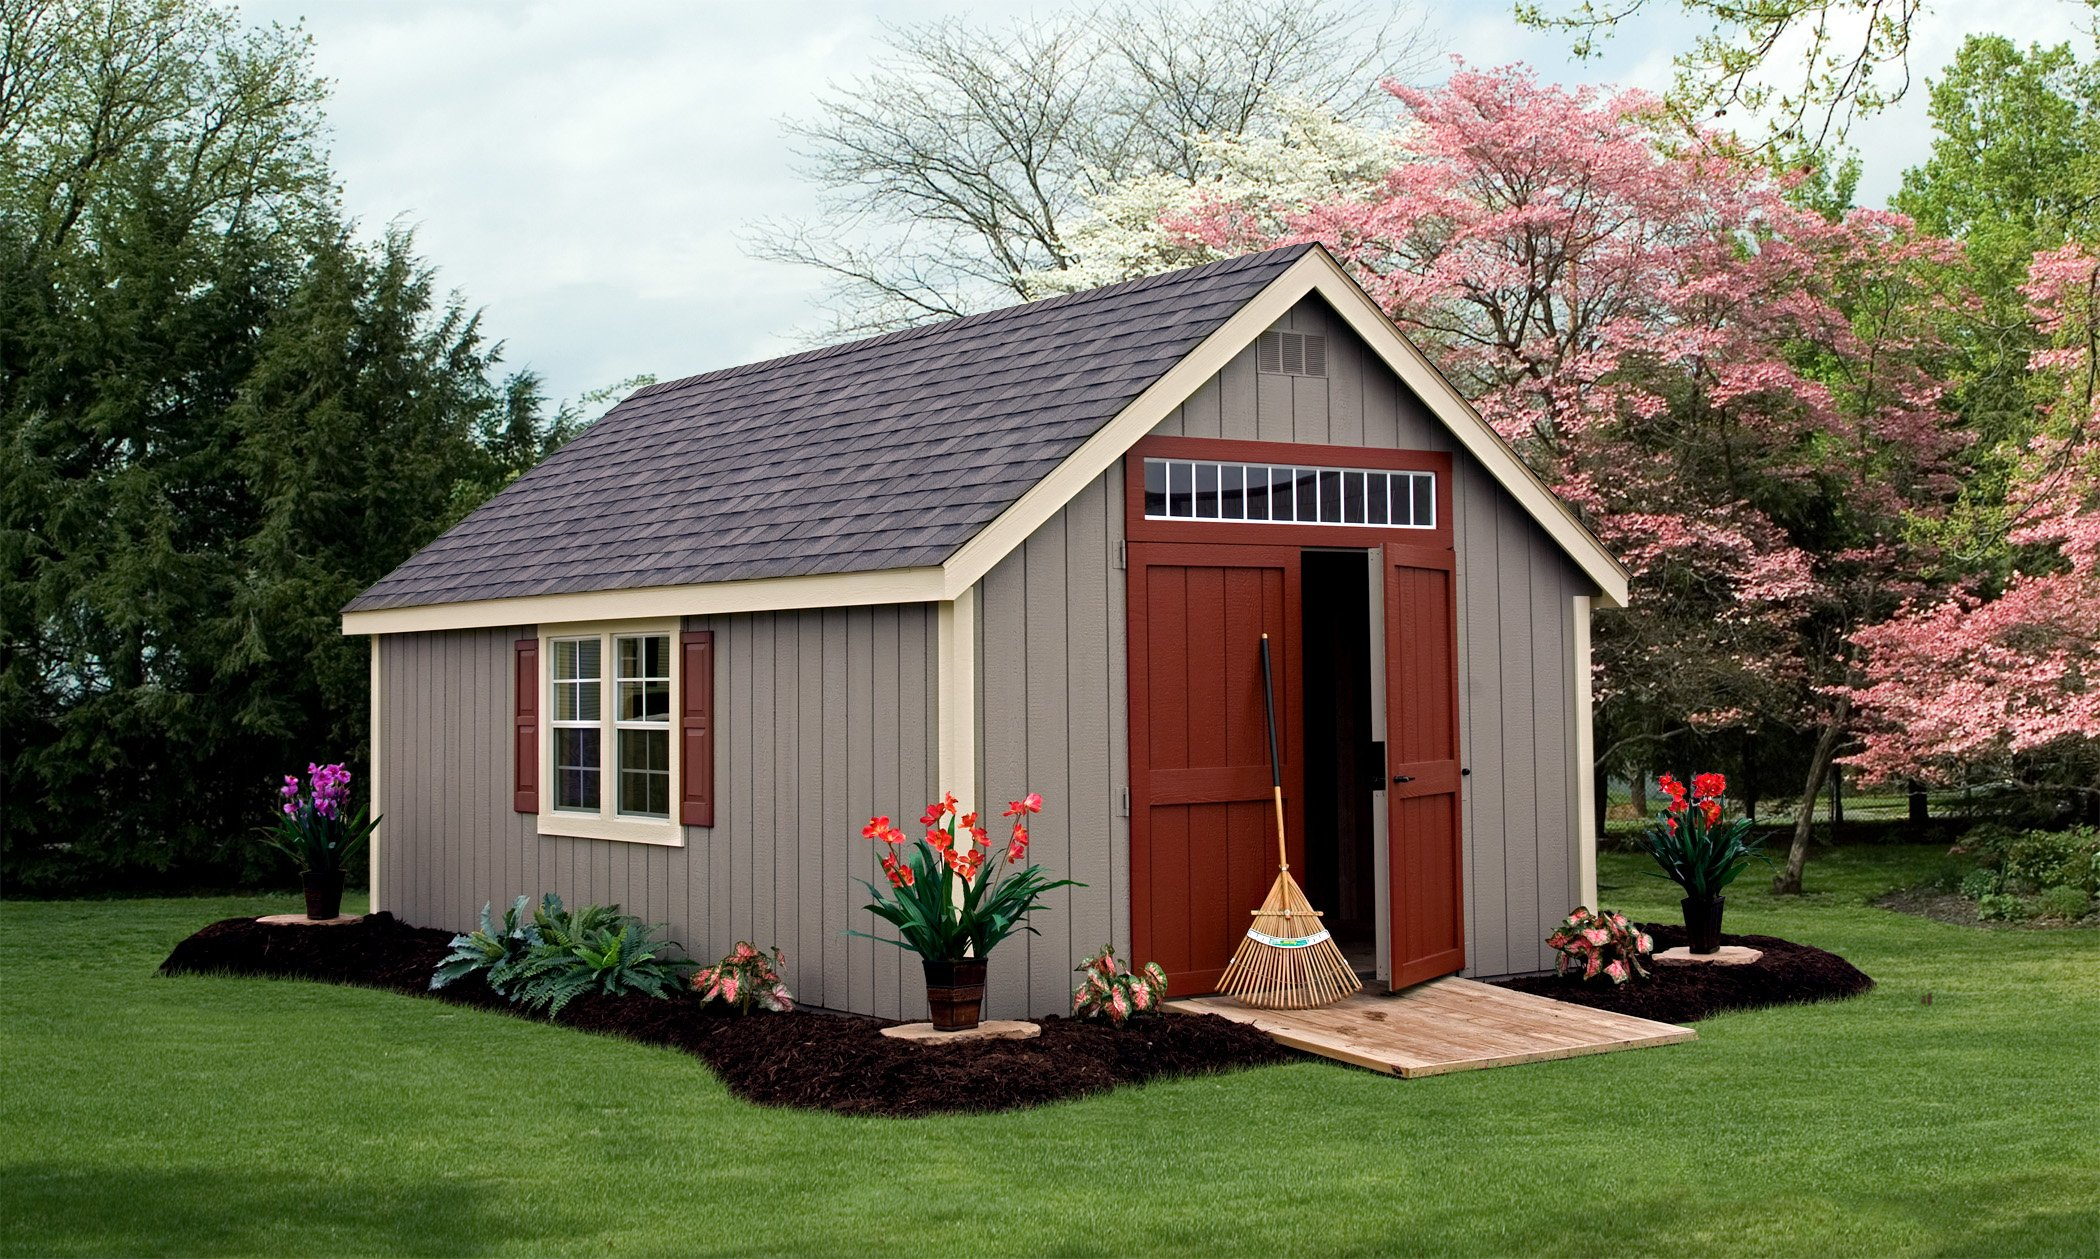 Deluxe_Classic_12x20 cape cod starting 2700 as shown 5630